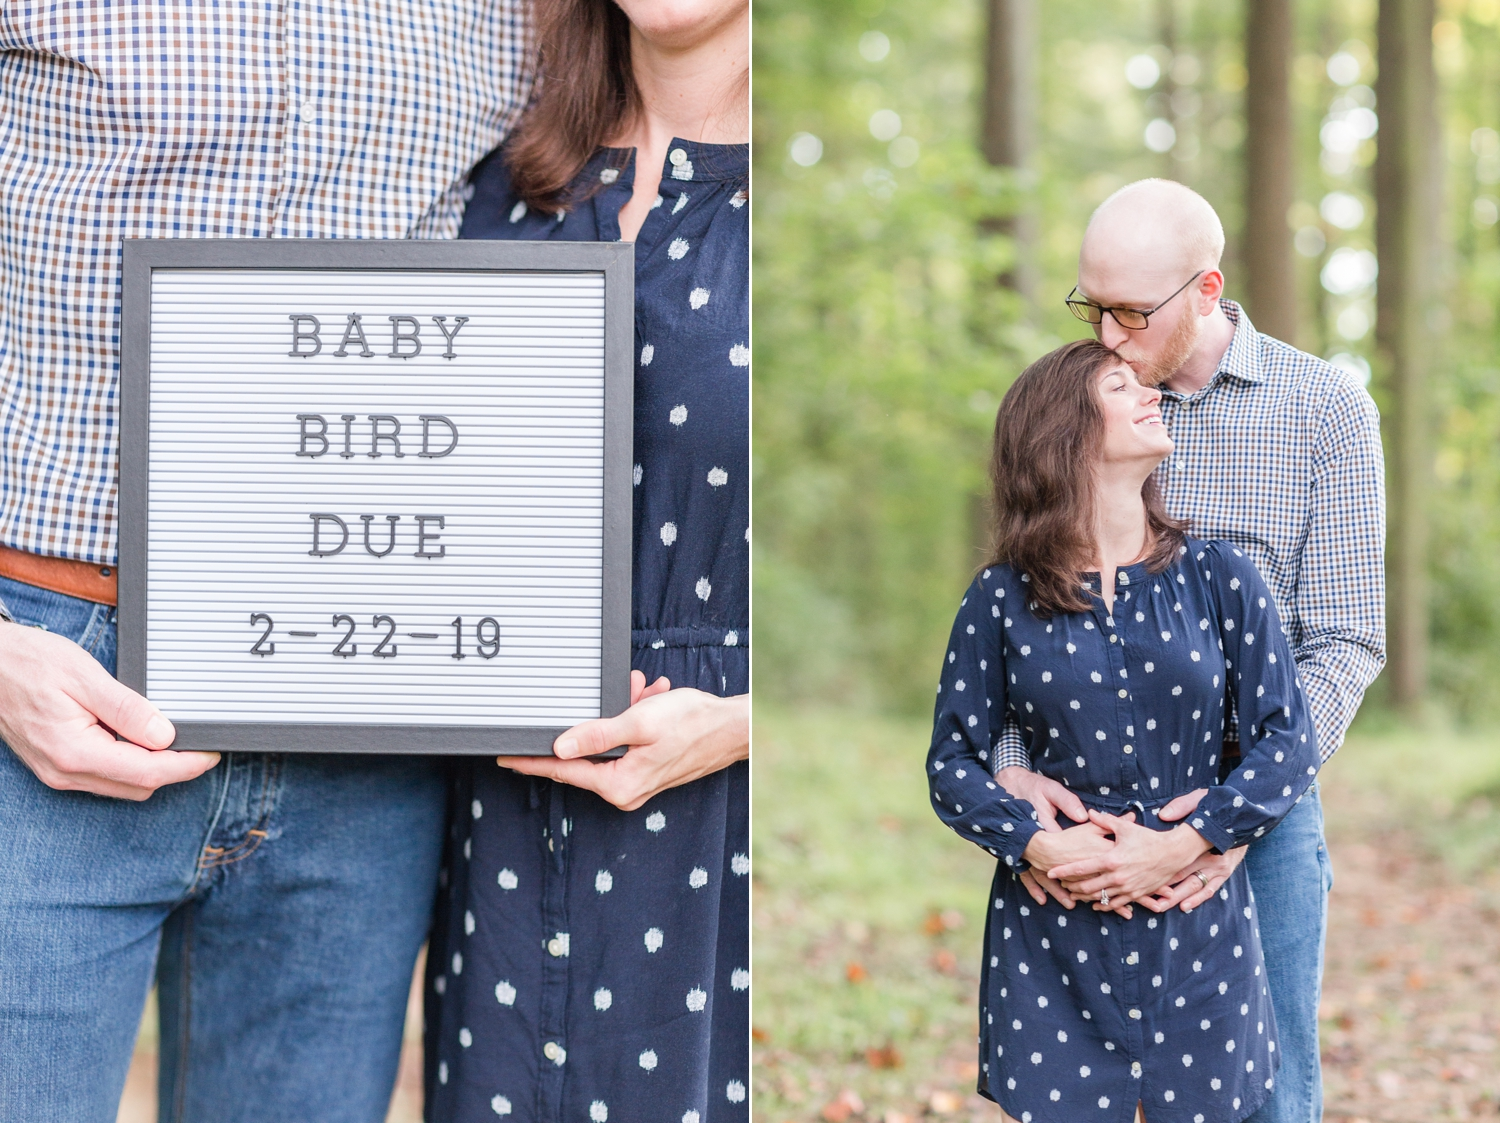 Bird Family 2018-44_Loch-Raven-Reservoir-Anniversary-Pregnancy-Reveal-Photographer-anna-grace-photography-photo.jpg